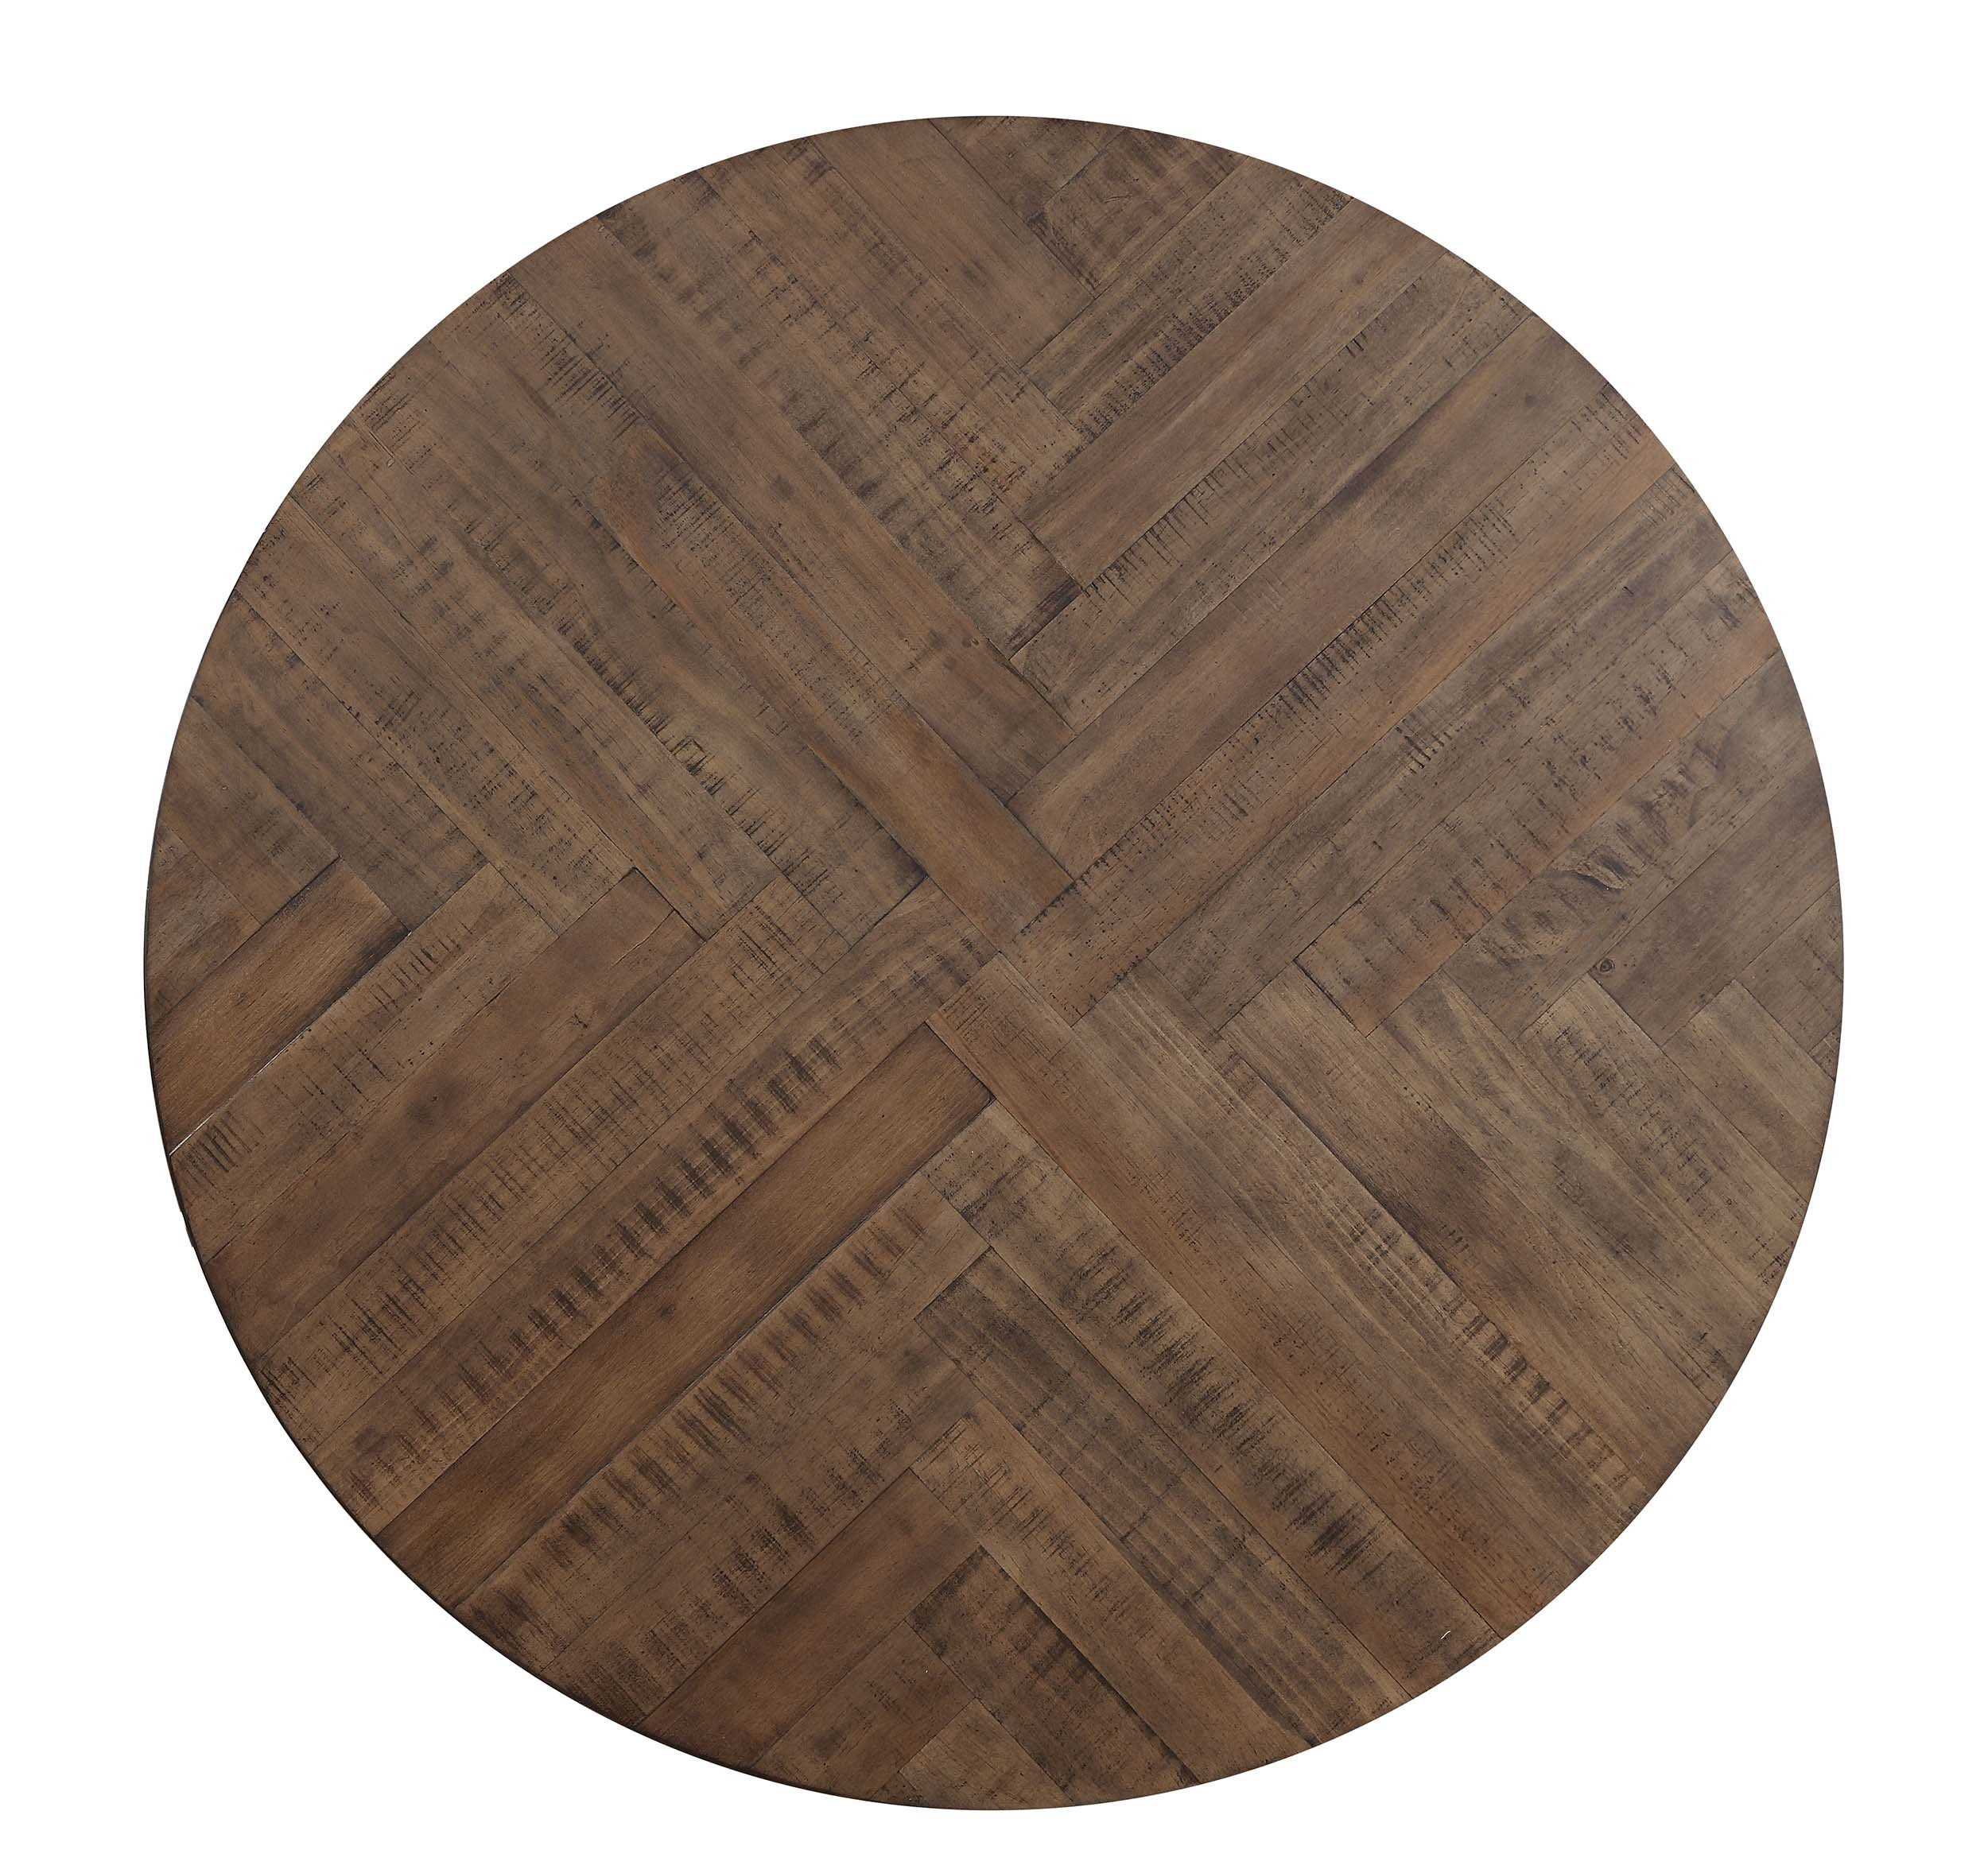 Homelegance Fideo 45'' Round Industrial Style Dining Table, Pine by Homelegance (Image #3)